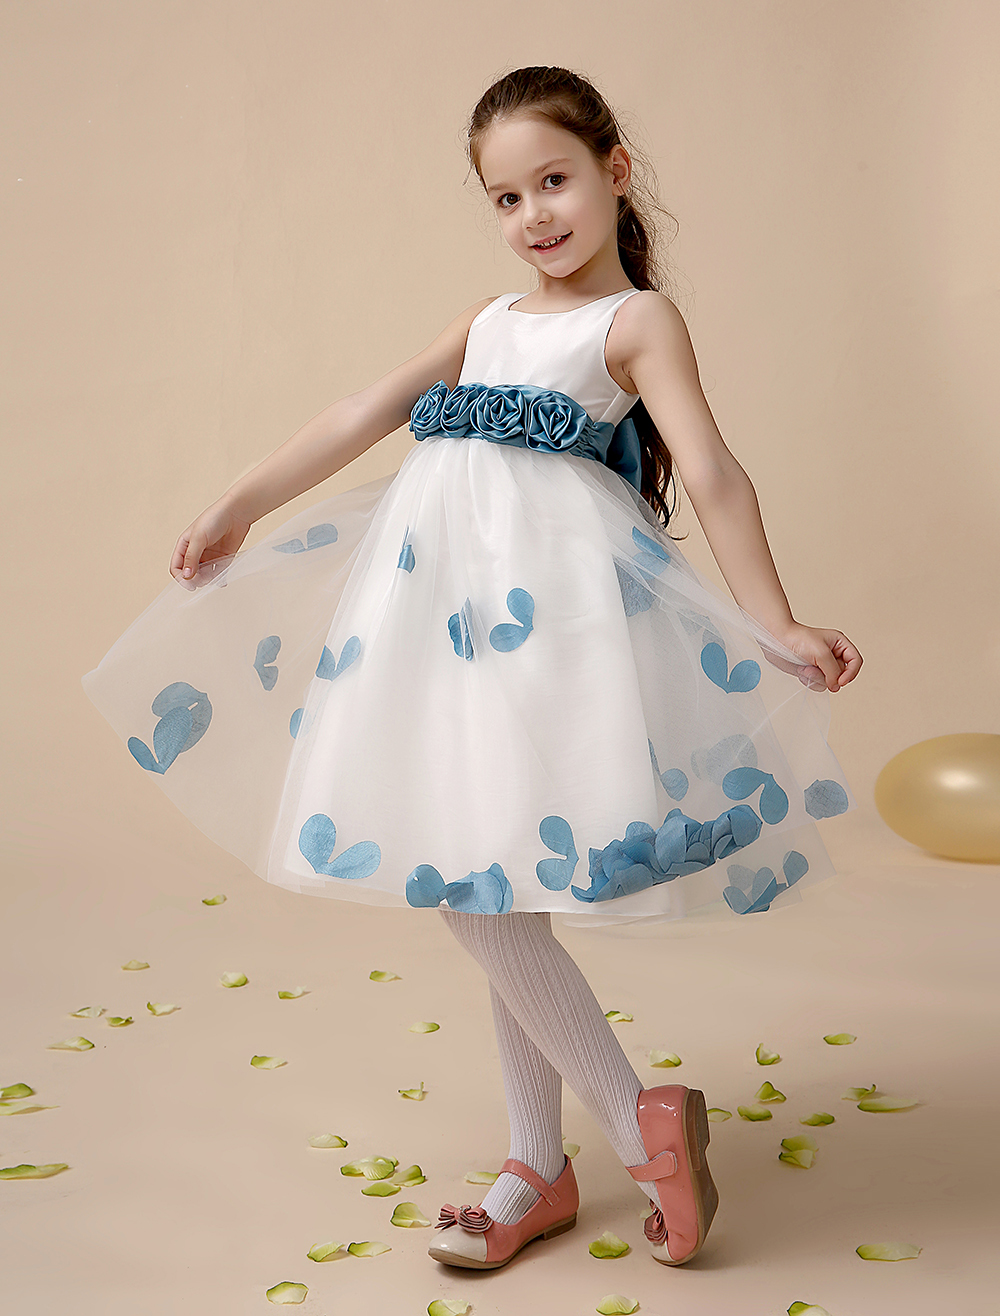 Tulle A line ivory little Girls Dresses with dusty blue sash wedding party kids girls formal